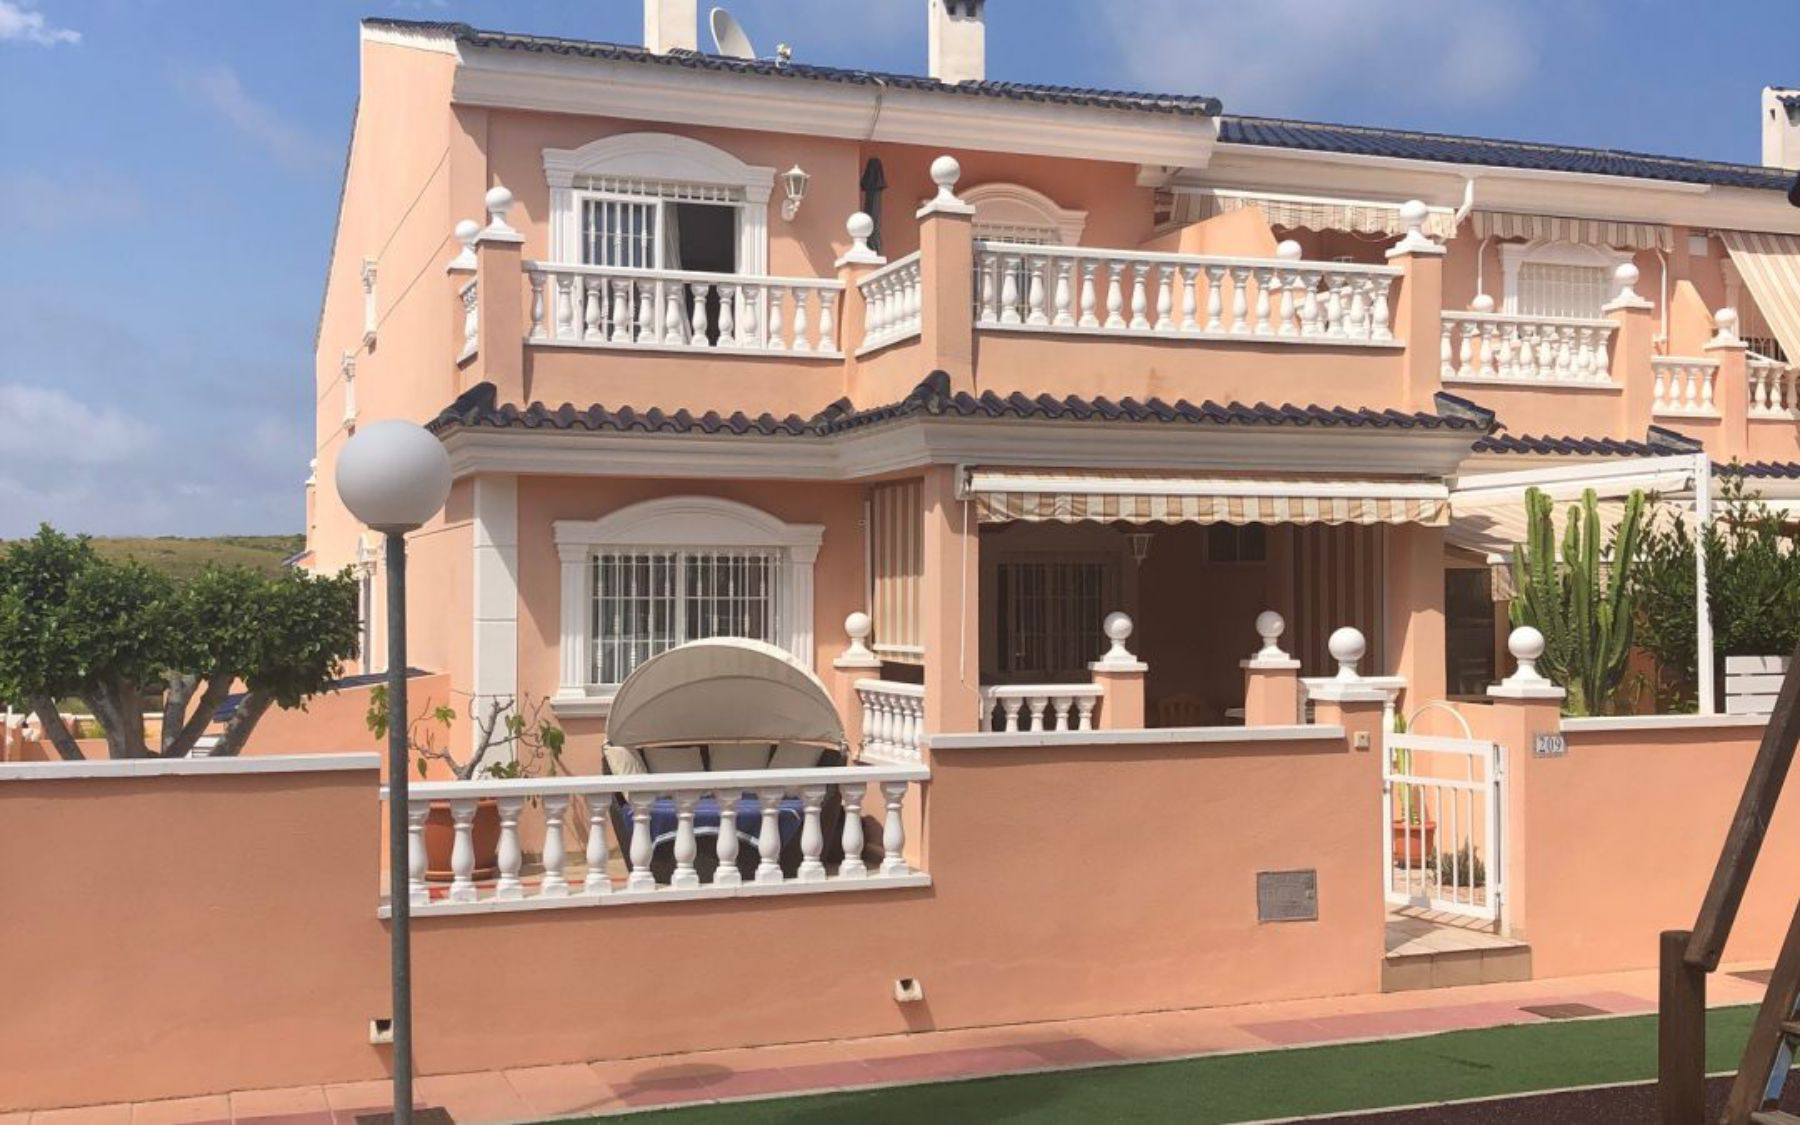 3 Bedrooms Villa For Sale with Private Garden and Swimming Pool in Gran Alacant